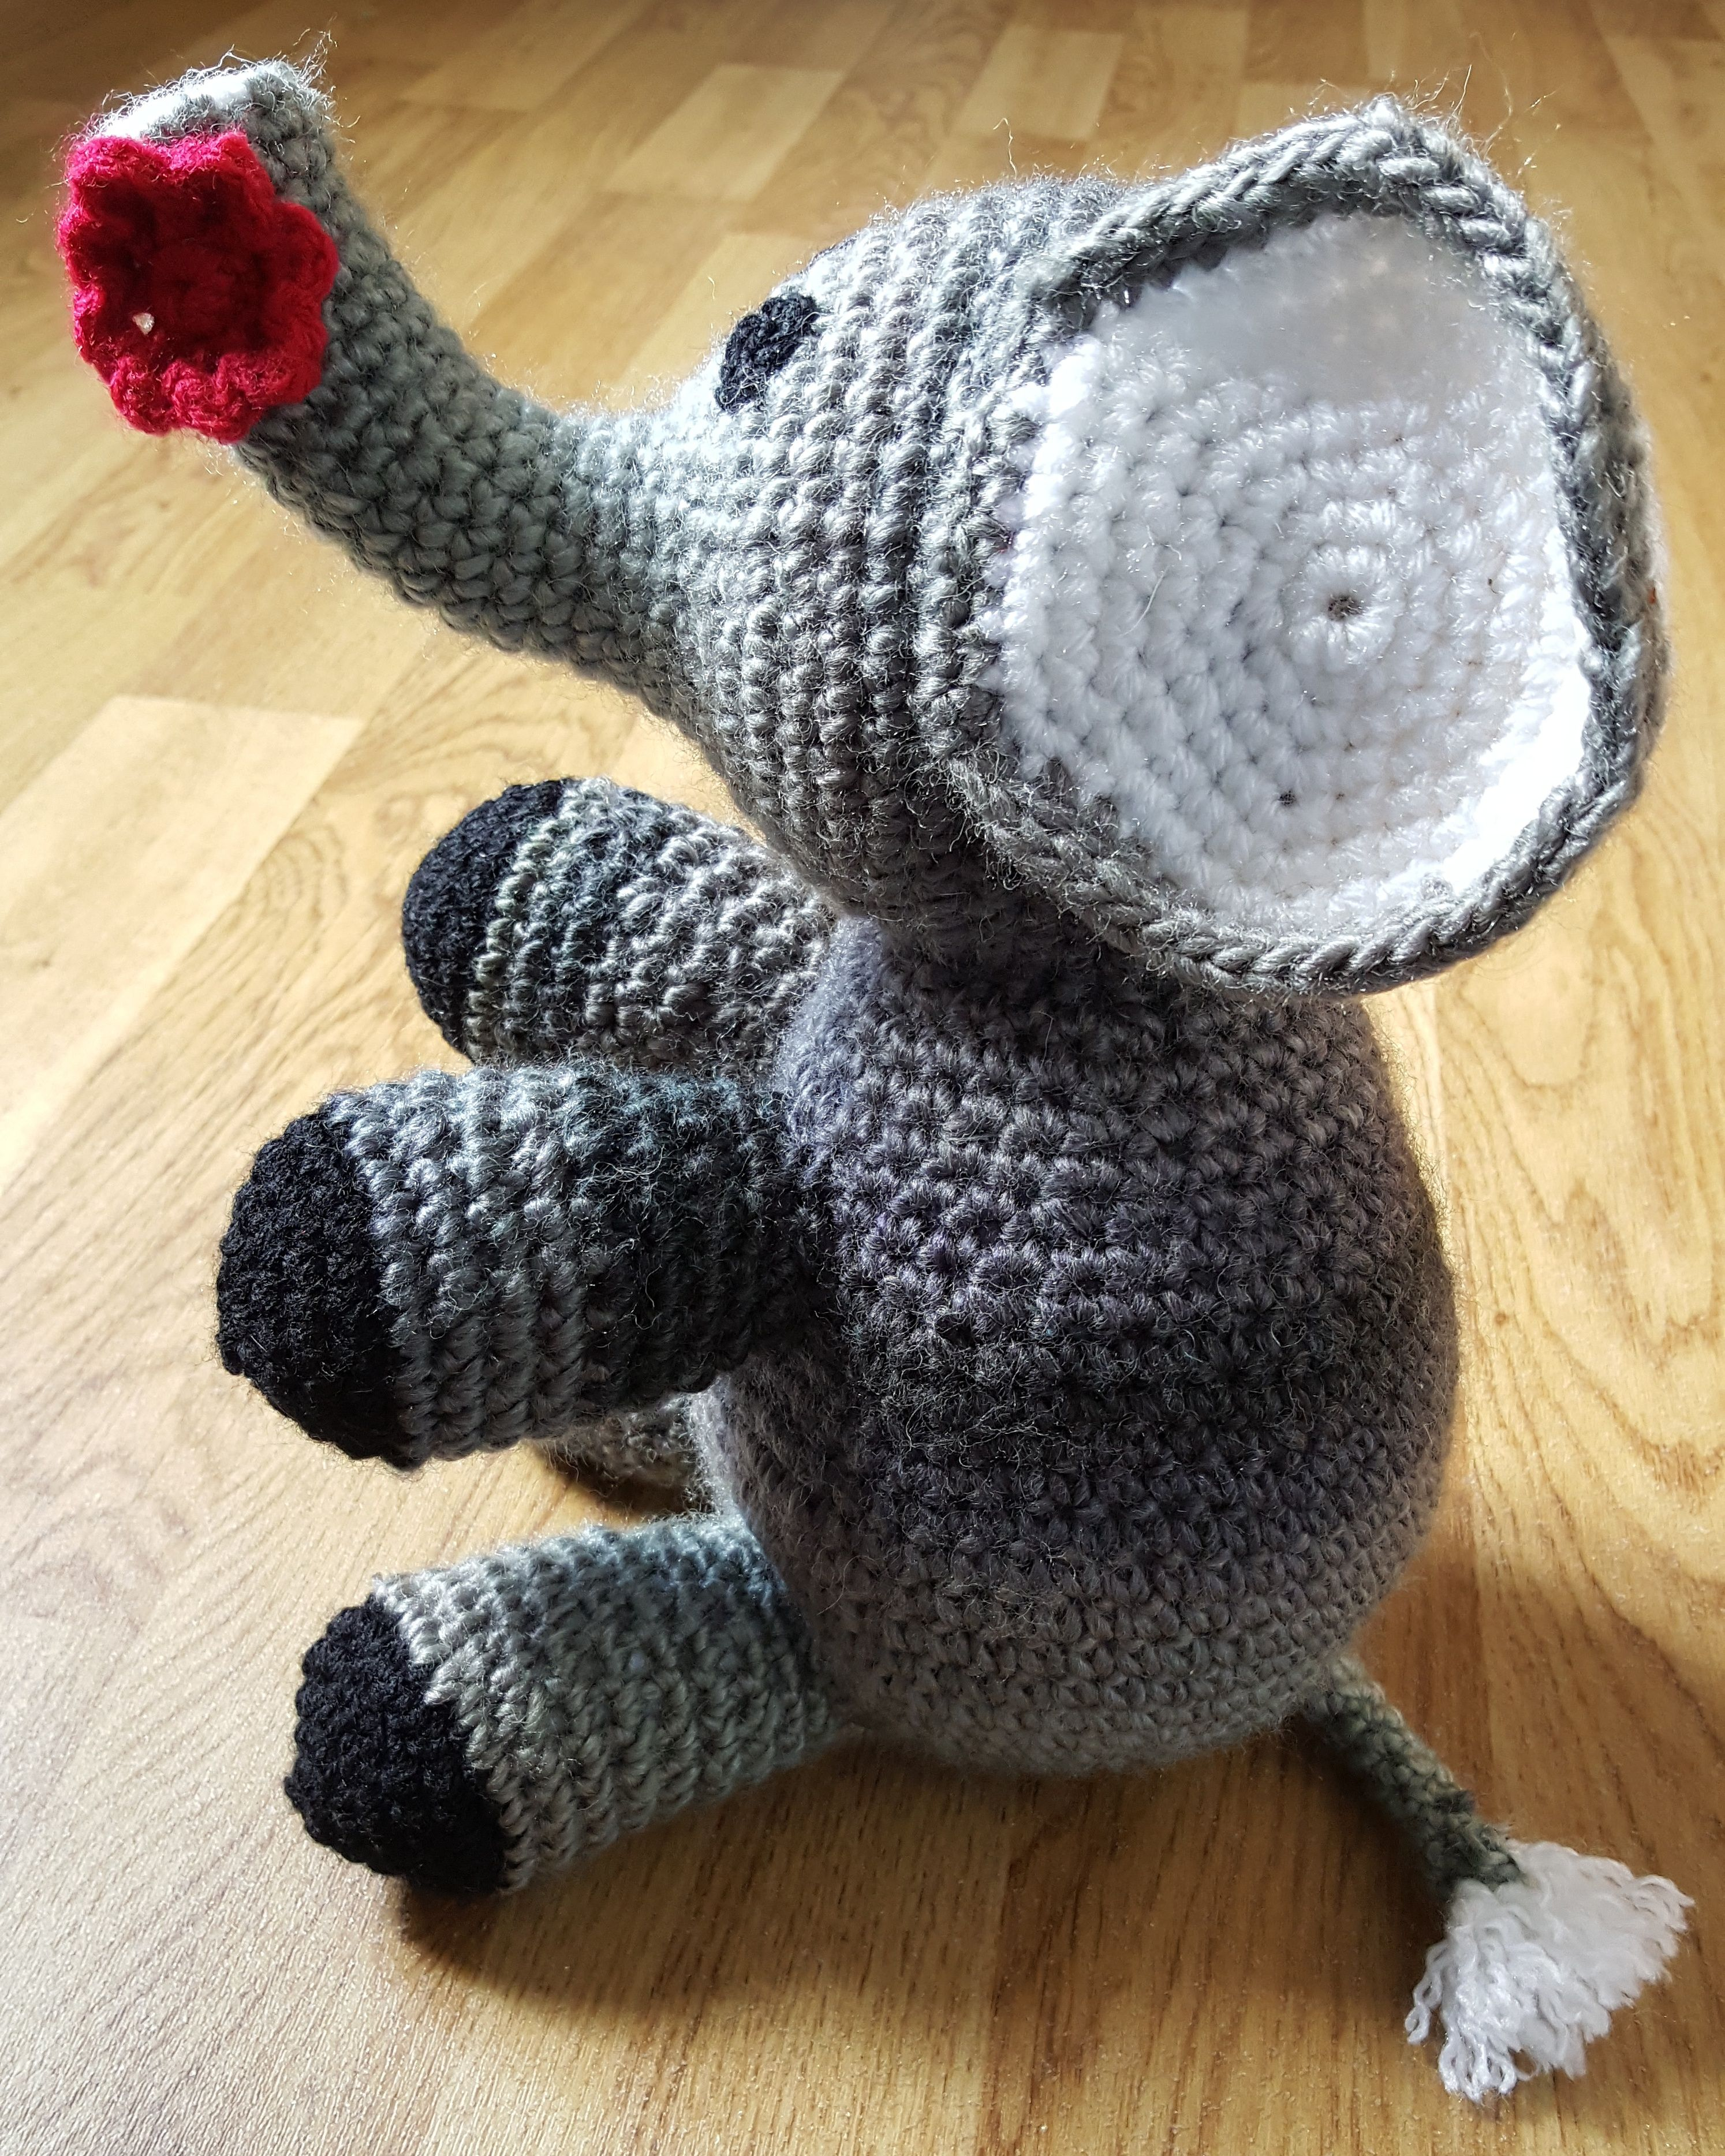 A free pattern showing how to make a crochet elephant  Easy